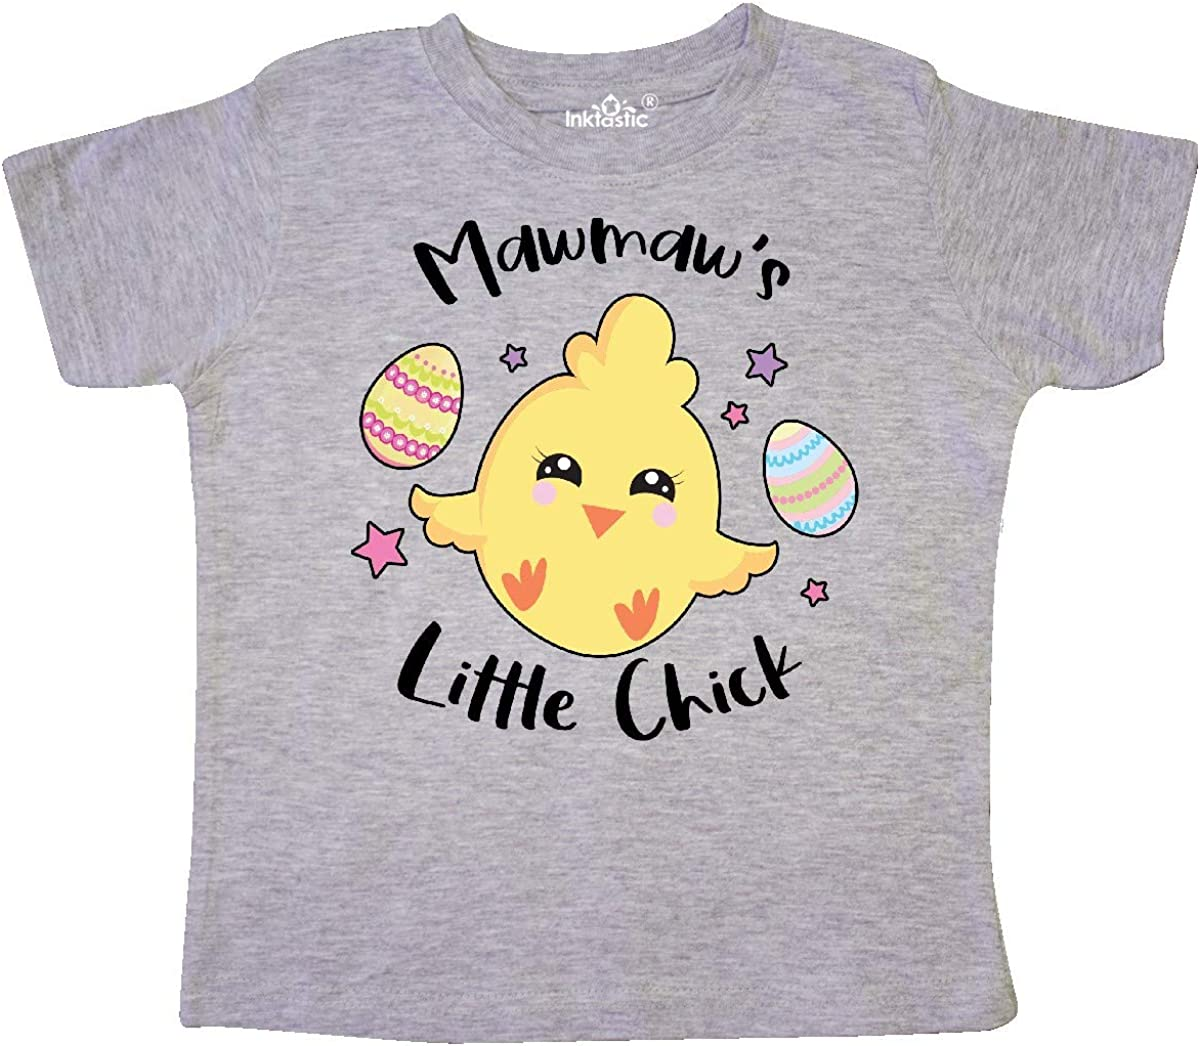 inktastic Happy Easter Mawmaws Little Chick Toddler T-Shirt